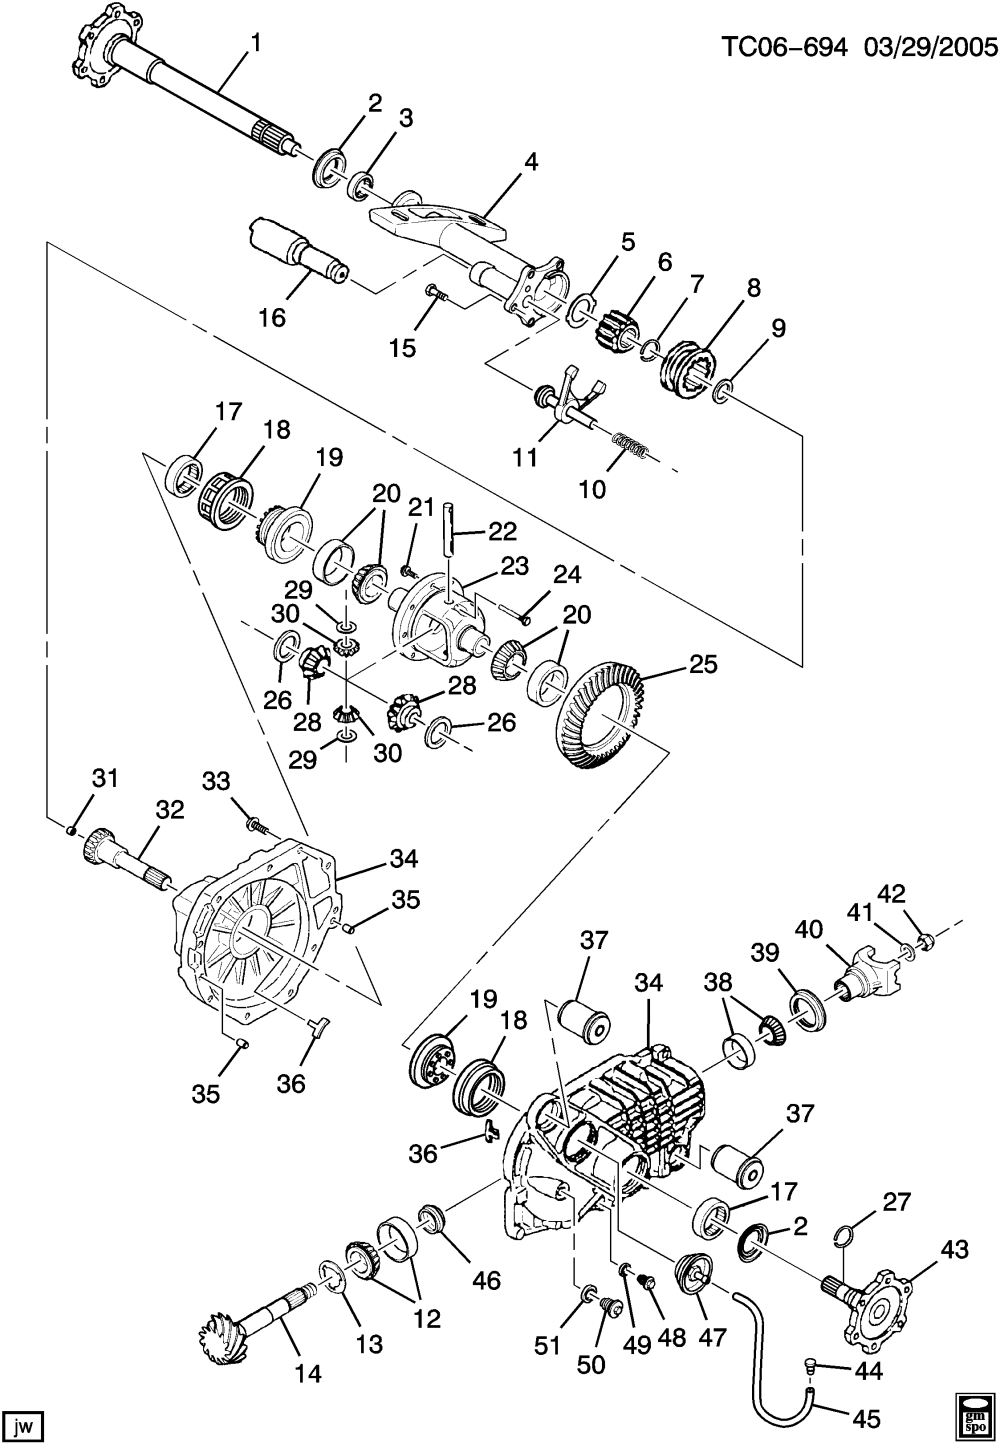 medium resolution of avalanche 1500 4wd differential carrier front axle part 2 8 25 tundra front axle avalanche front axle schematic